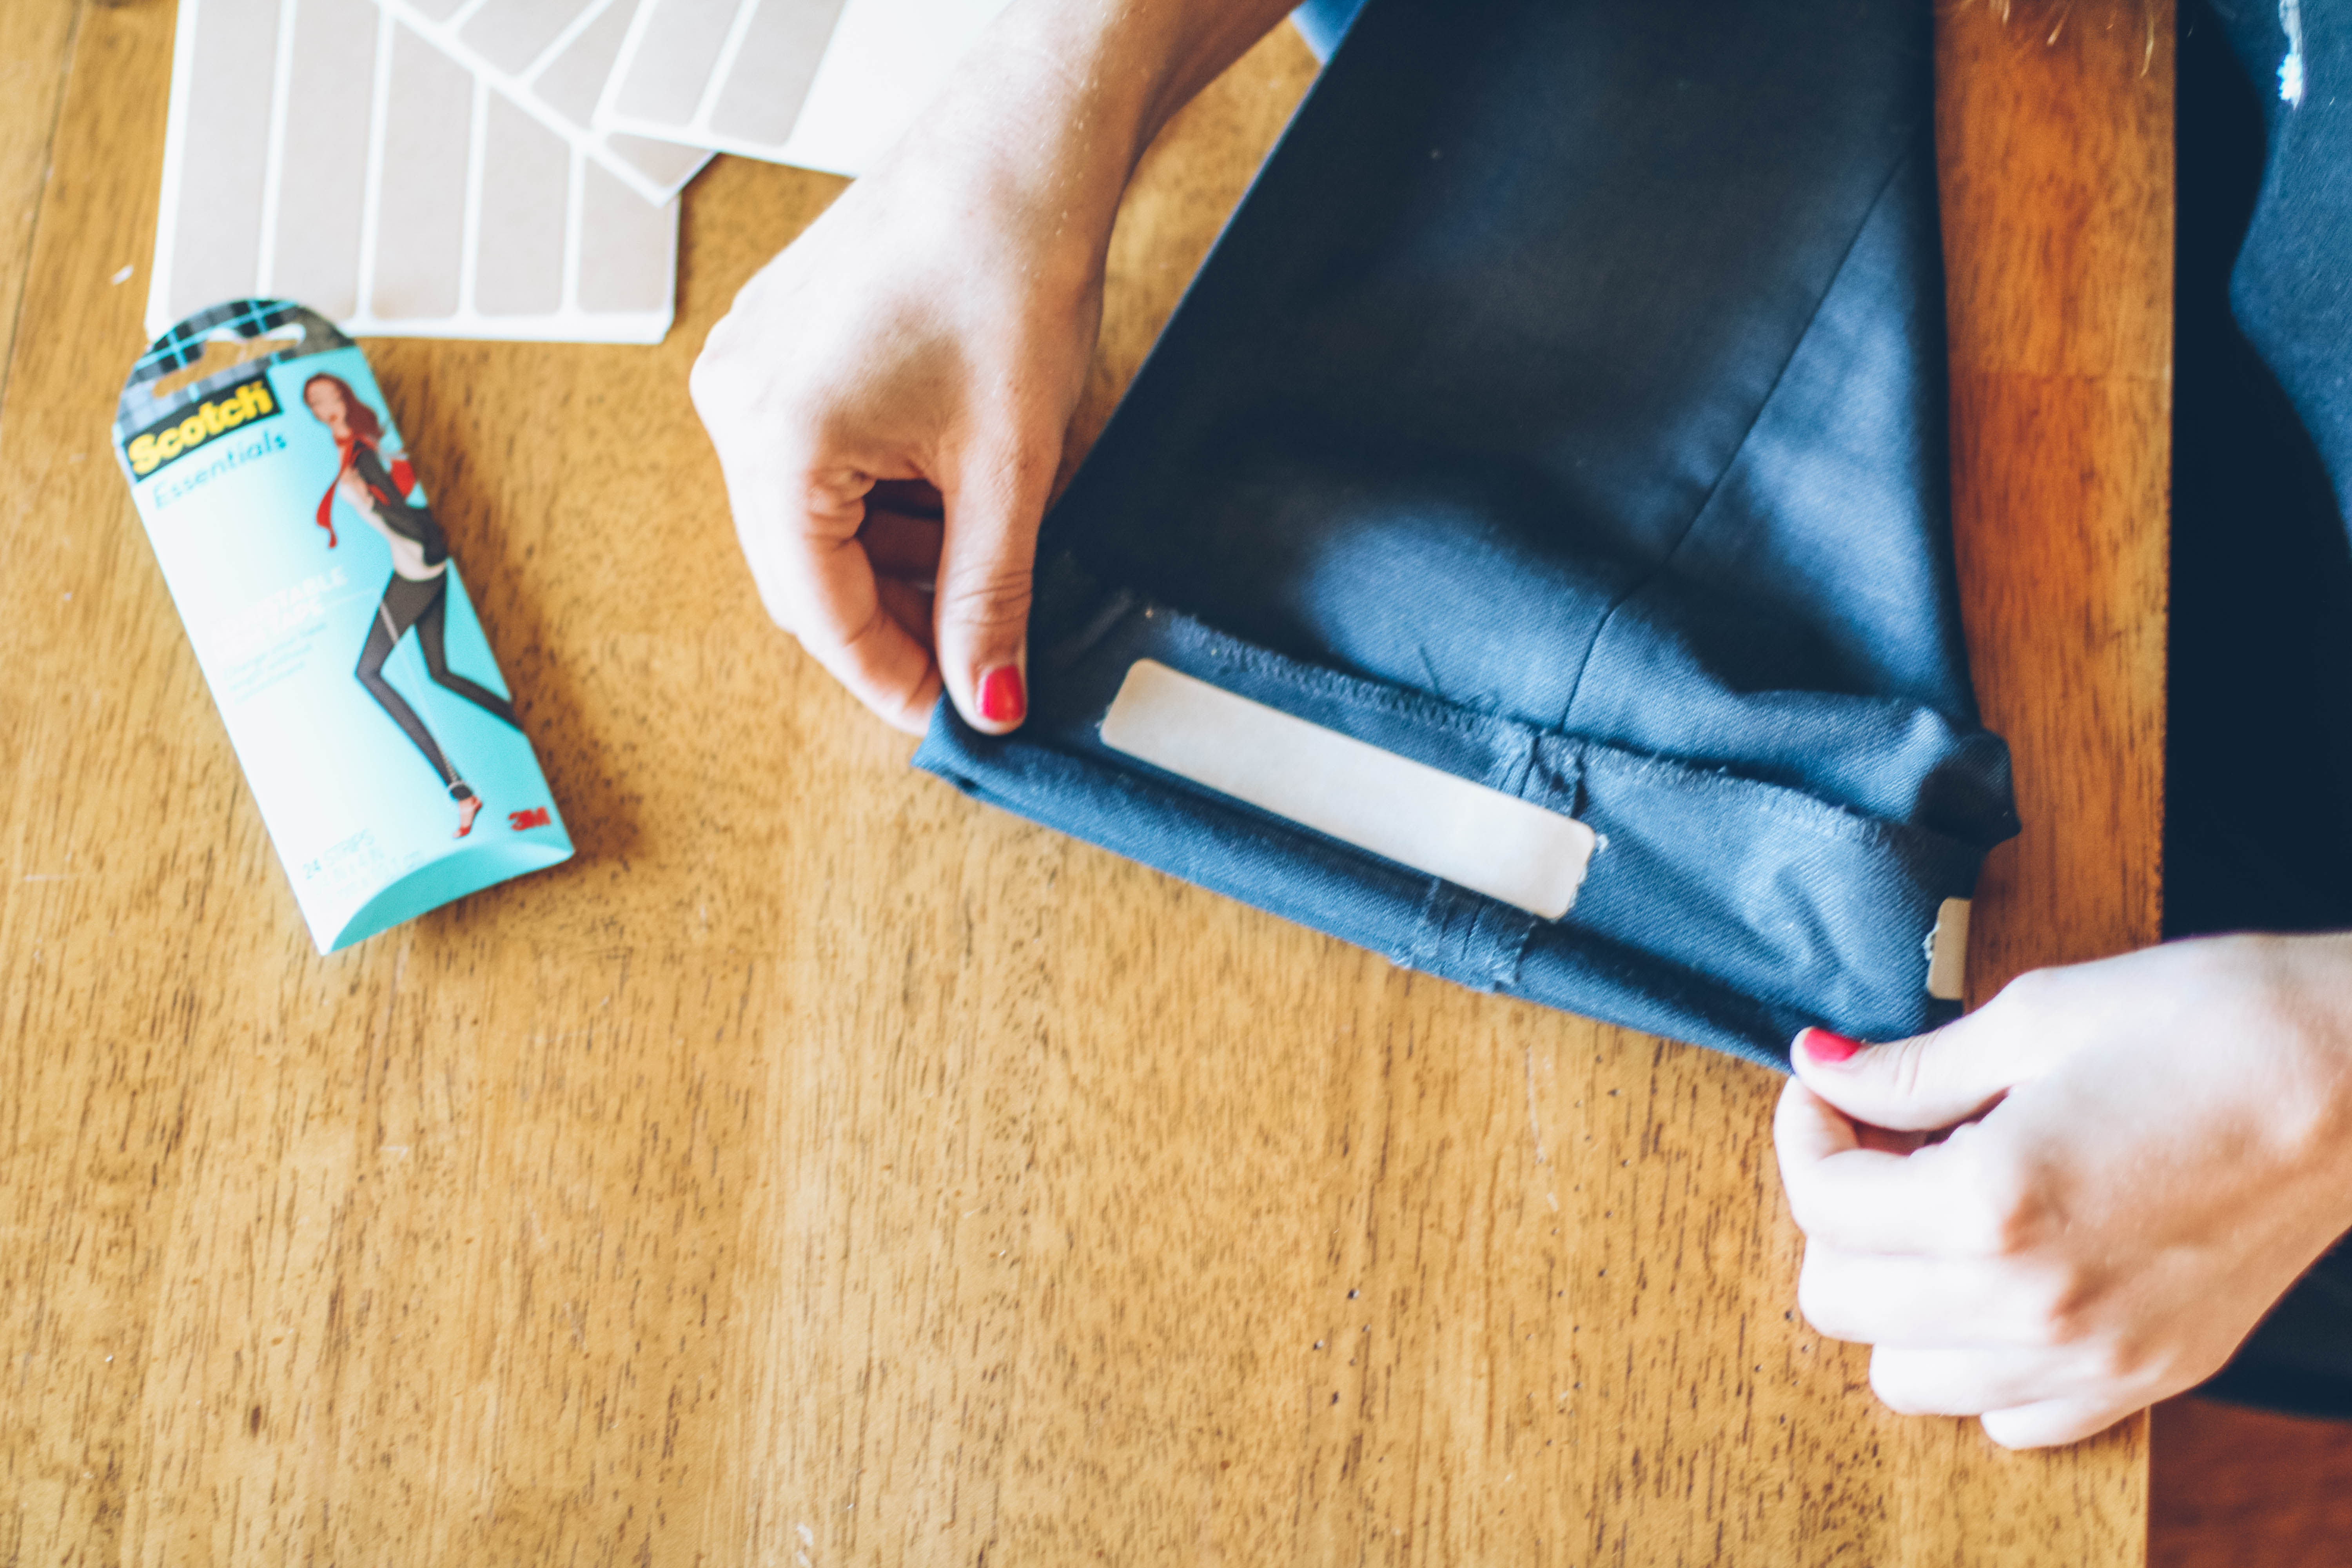 How To Mend A Seam With No Sewing! by popular Utah blogger Dani Marie